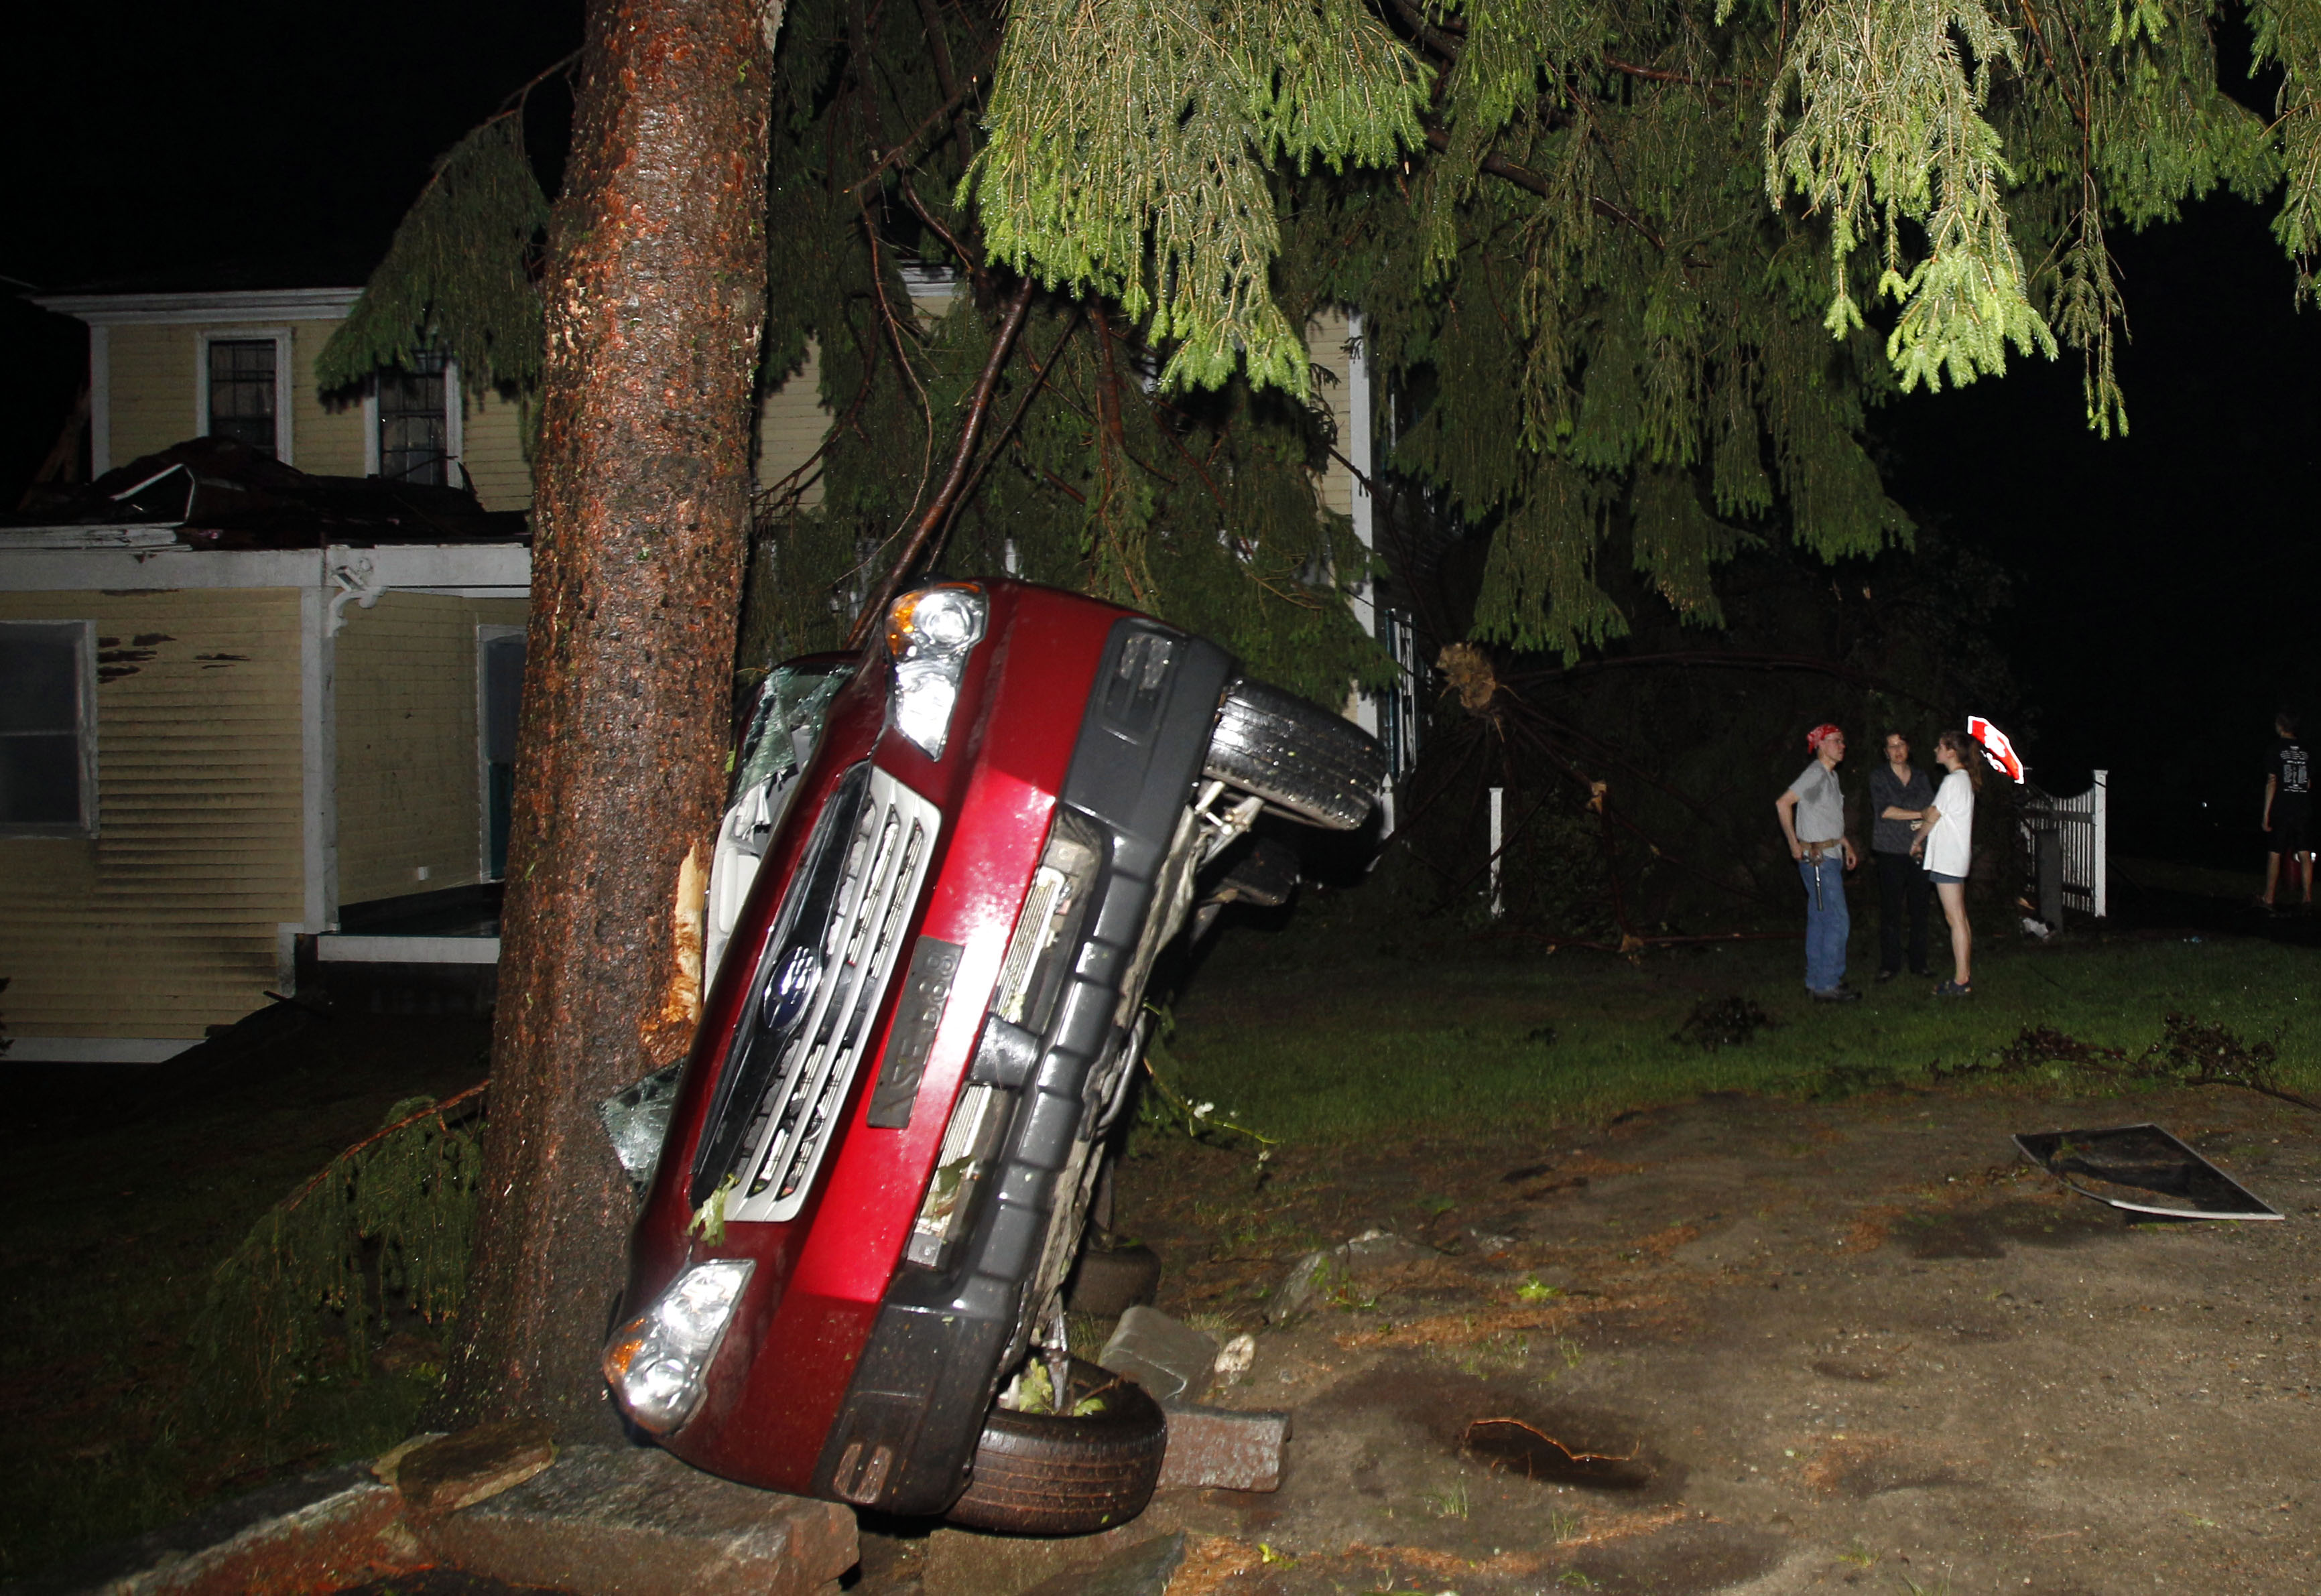 Storms hit W. Mass. area struck by June tornadoes